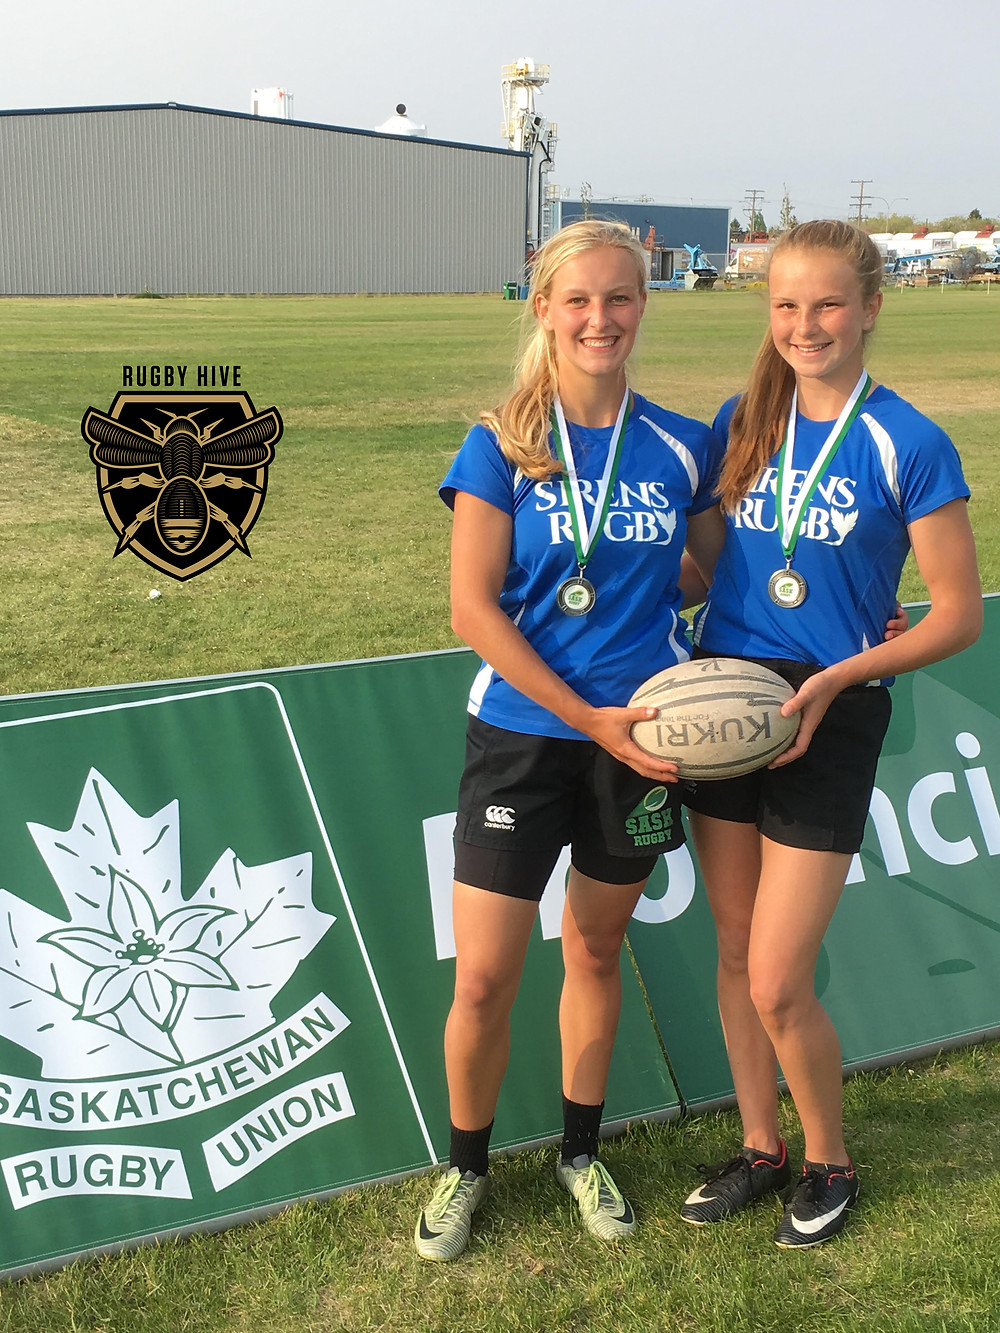 Christina Norsten (Left), Carissa Norsten (Right) Sirens Rugby Club